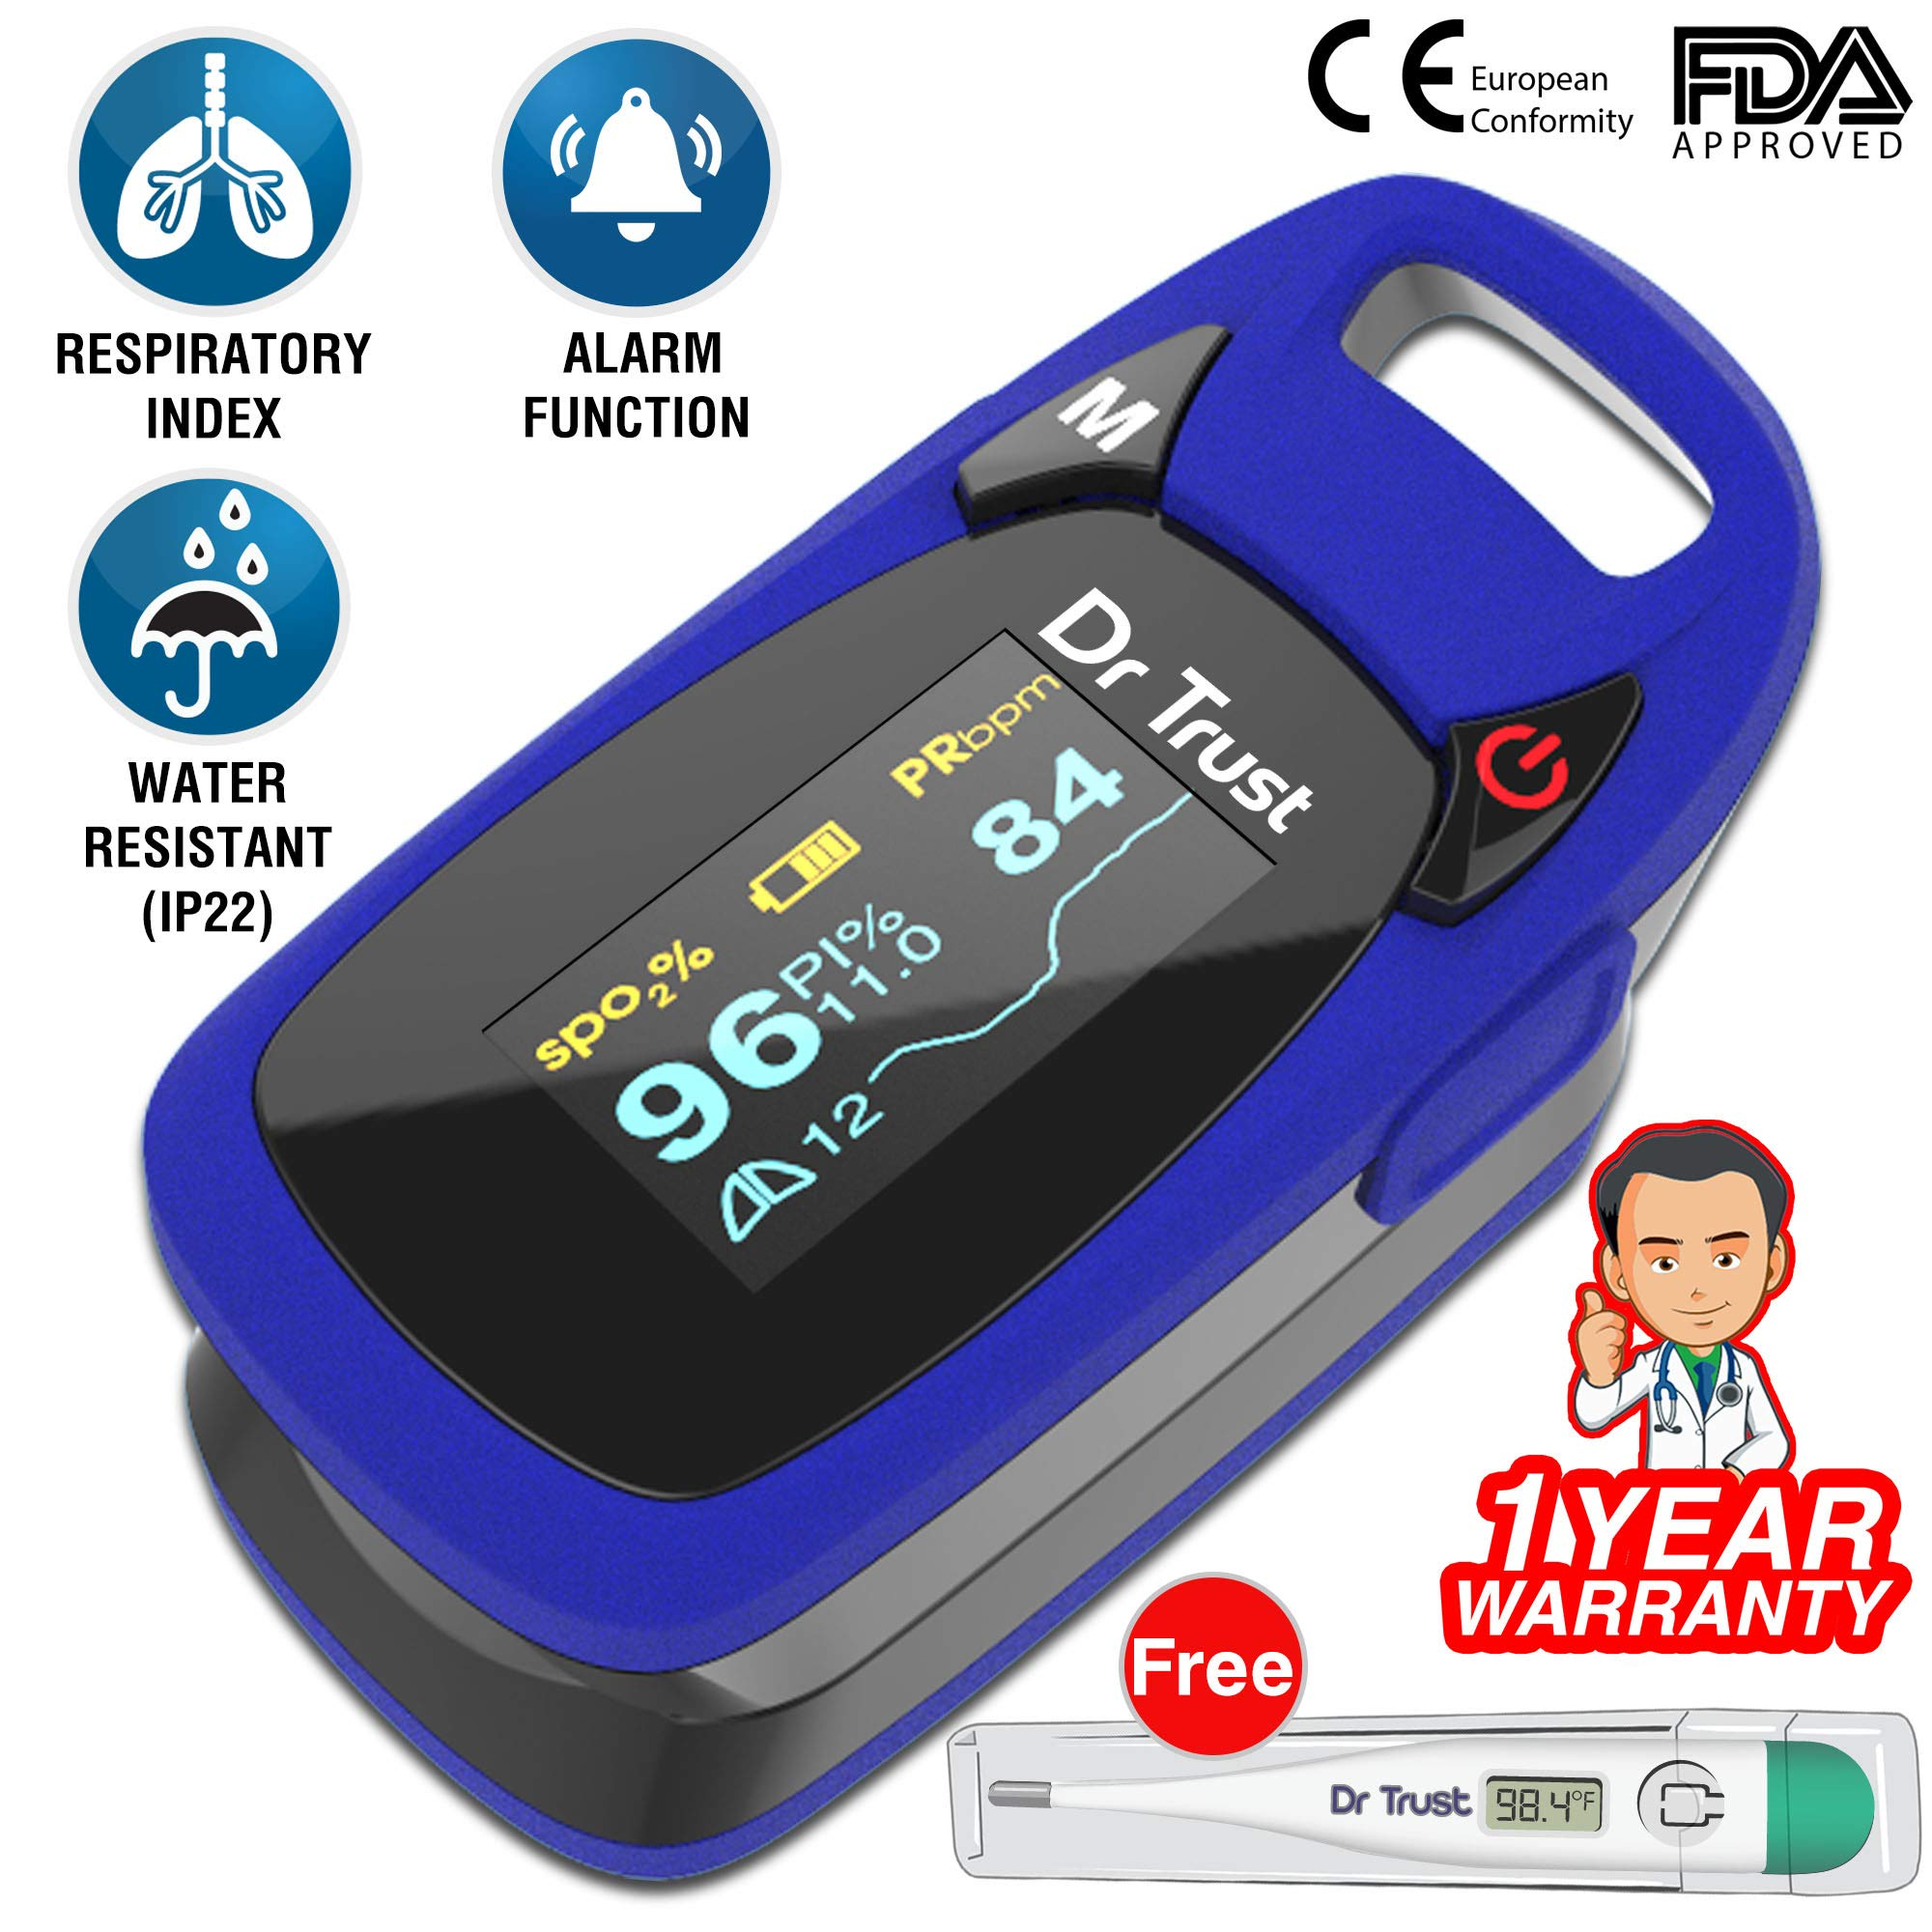 Dr Trust (USA) Professional Series Finger Tip Pulse Oximeter With Audio Visual Alarm and Respiratory Rate(Blue) product image